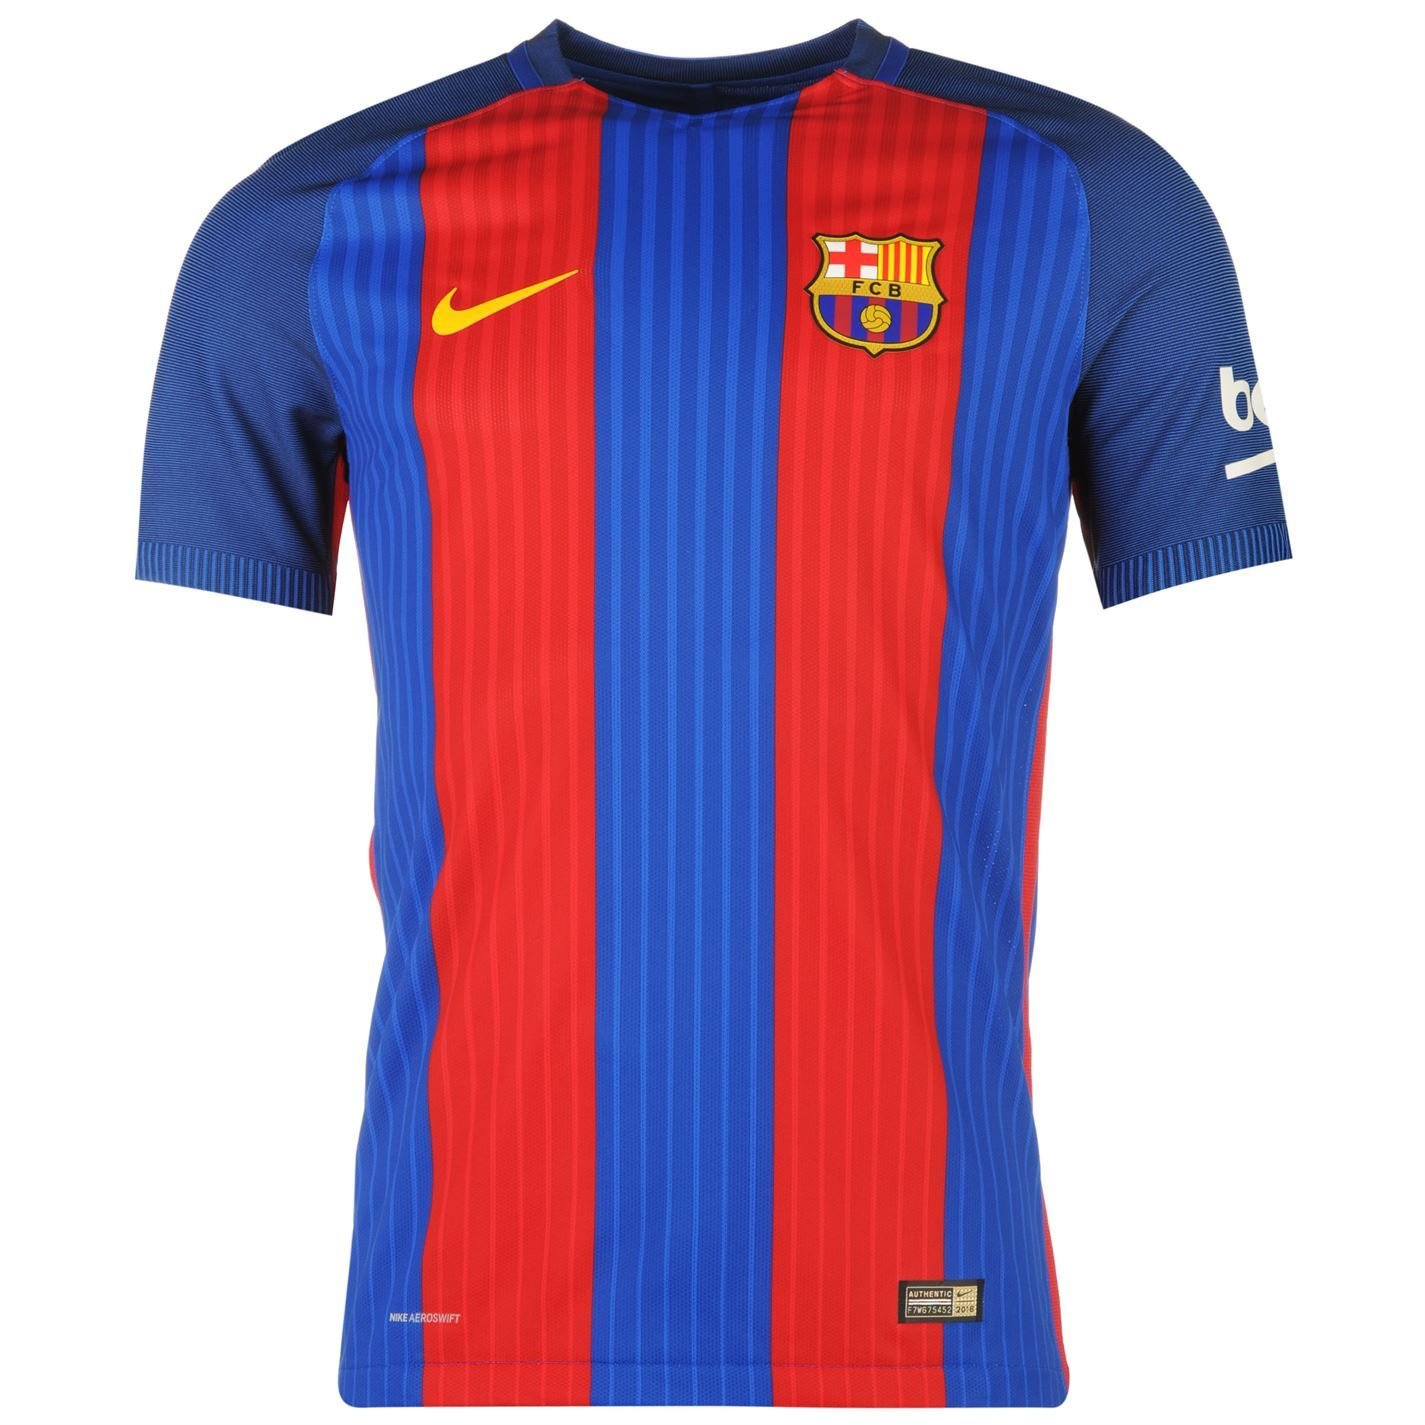 771d43acf Nike FC Barcelona Home Authentic Jersey 2016 2017 Mens Royal Red Football  Soccer Medium  Amazon.co.uk  Sports   Outdoors